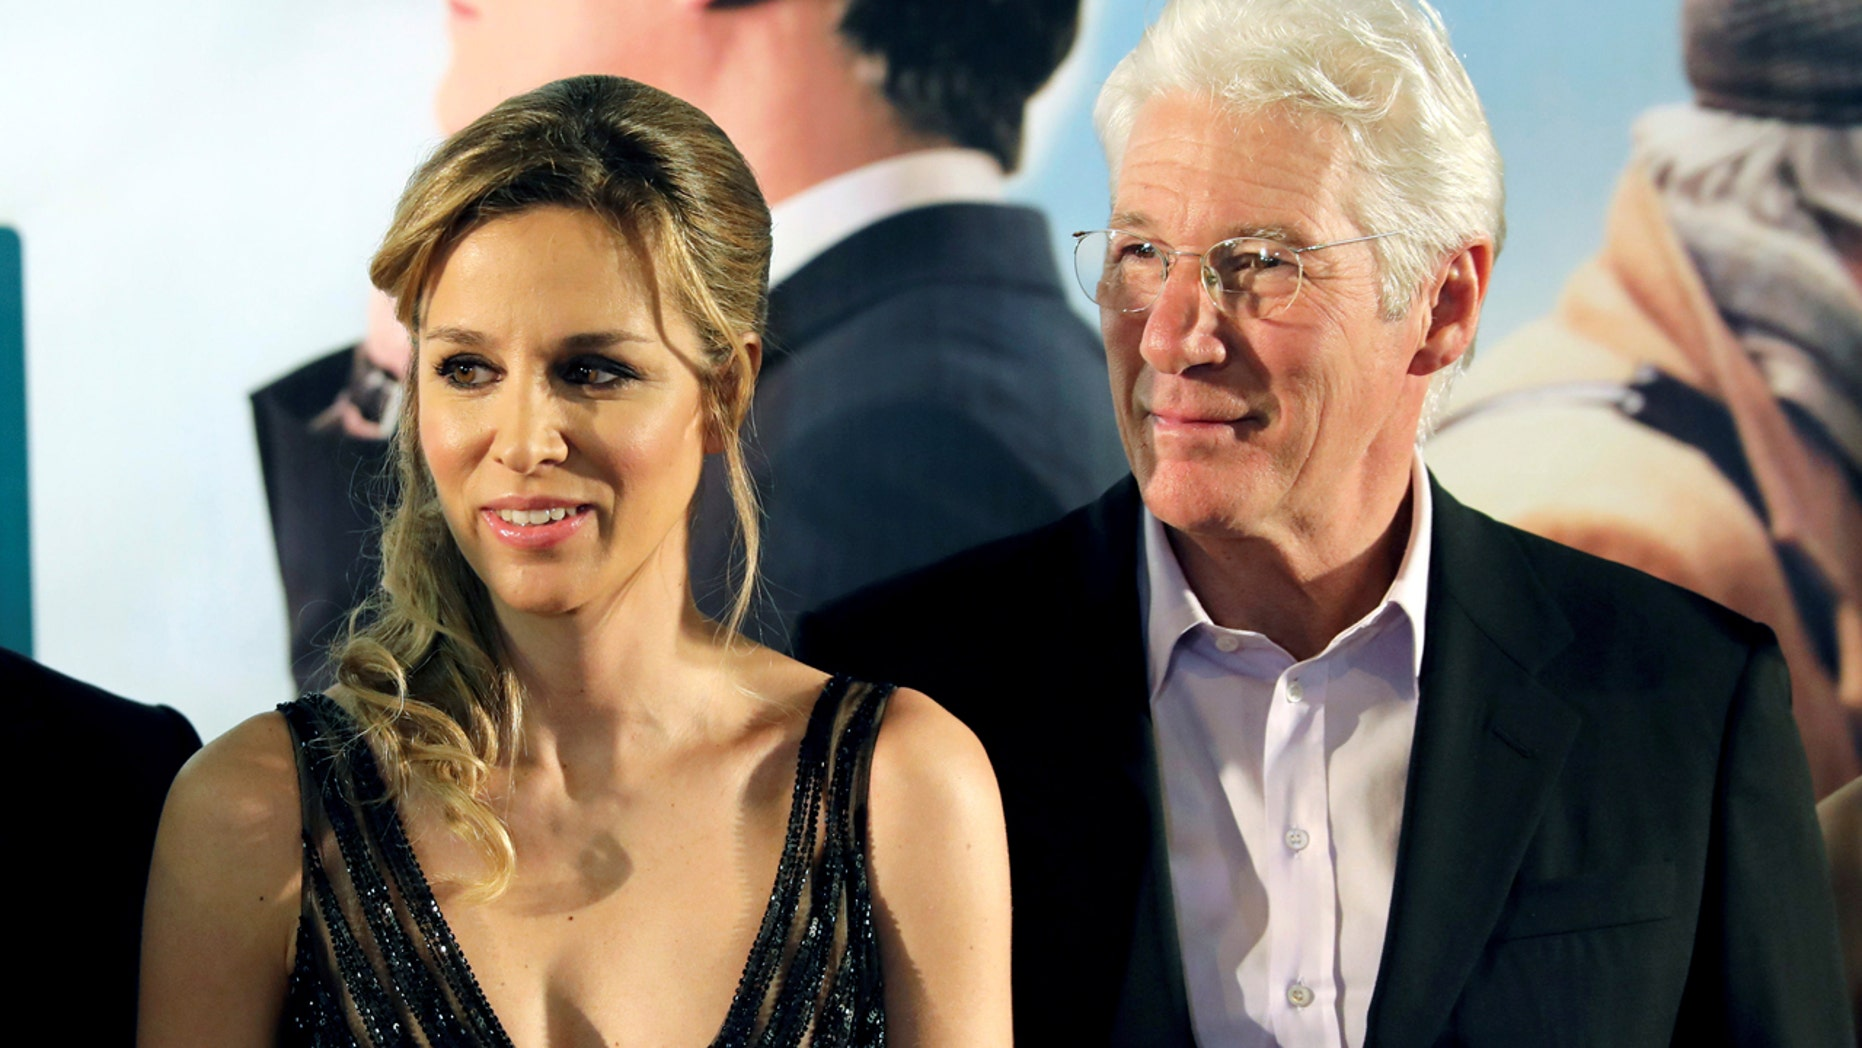 Richard Gere and his new wife, Alejandra Silva, have welcomed their initial child together, Fox News can confirm.